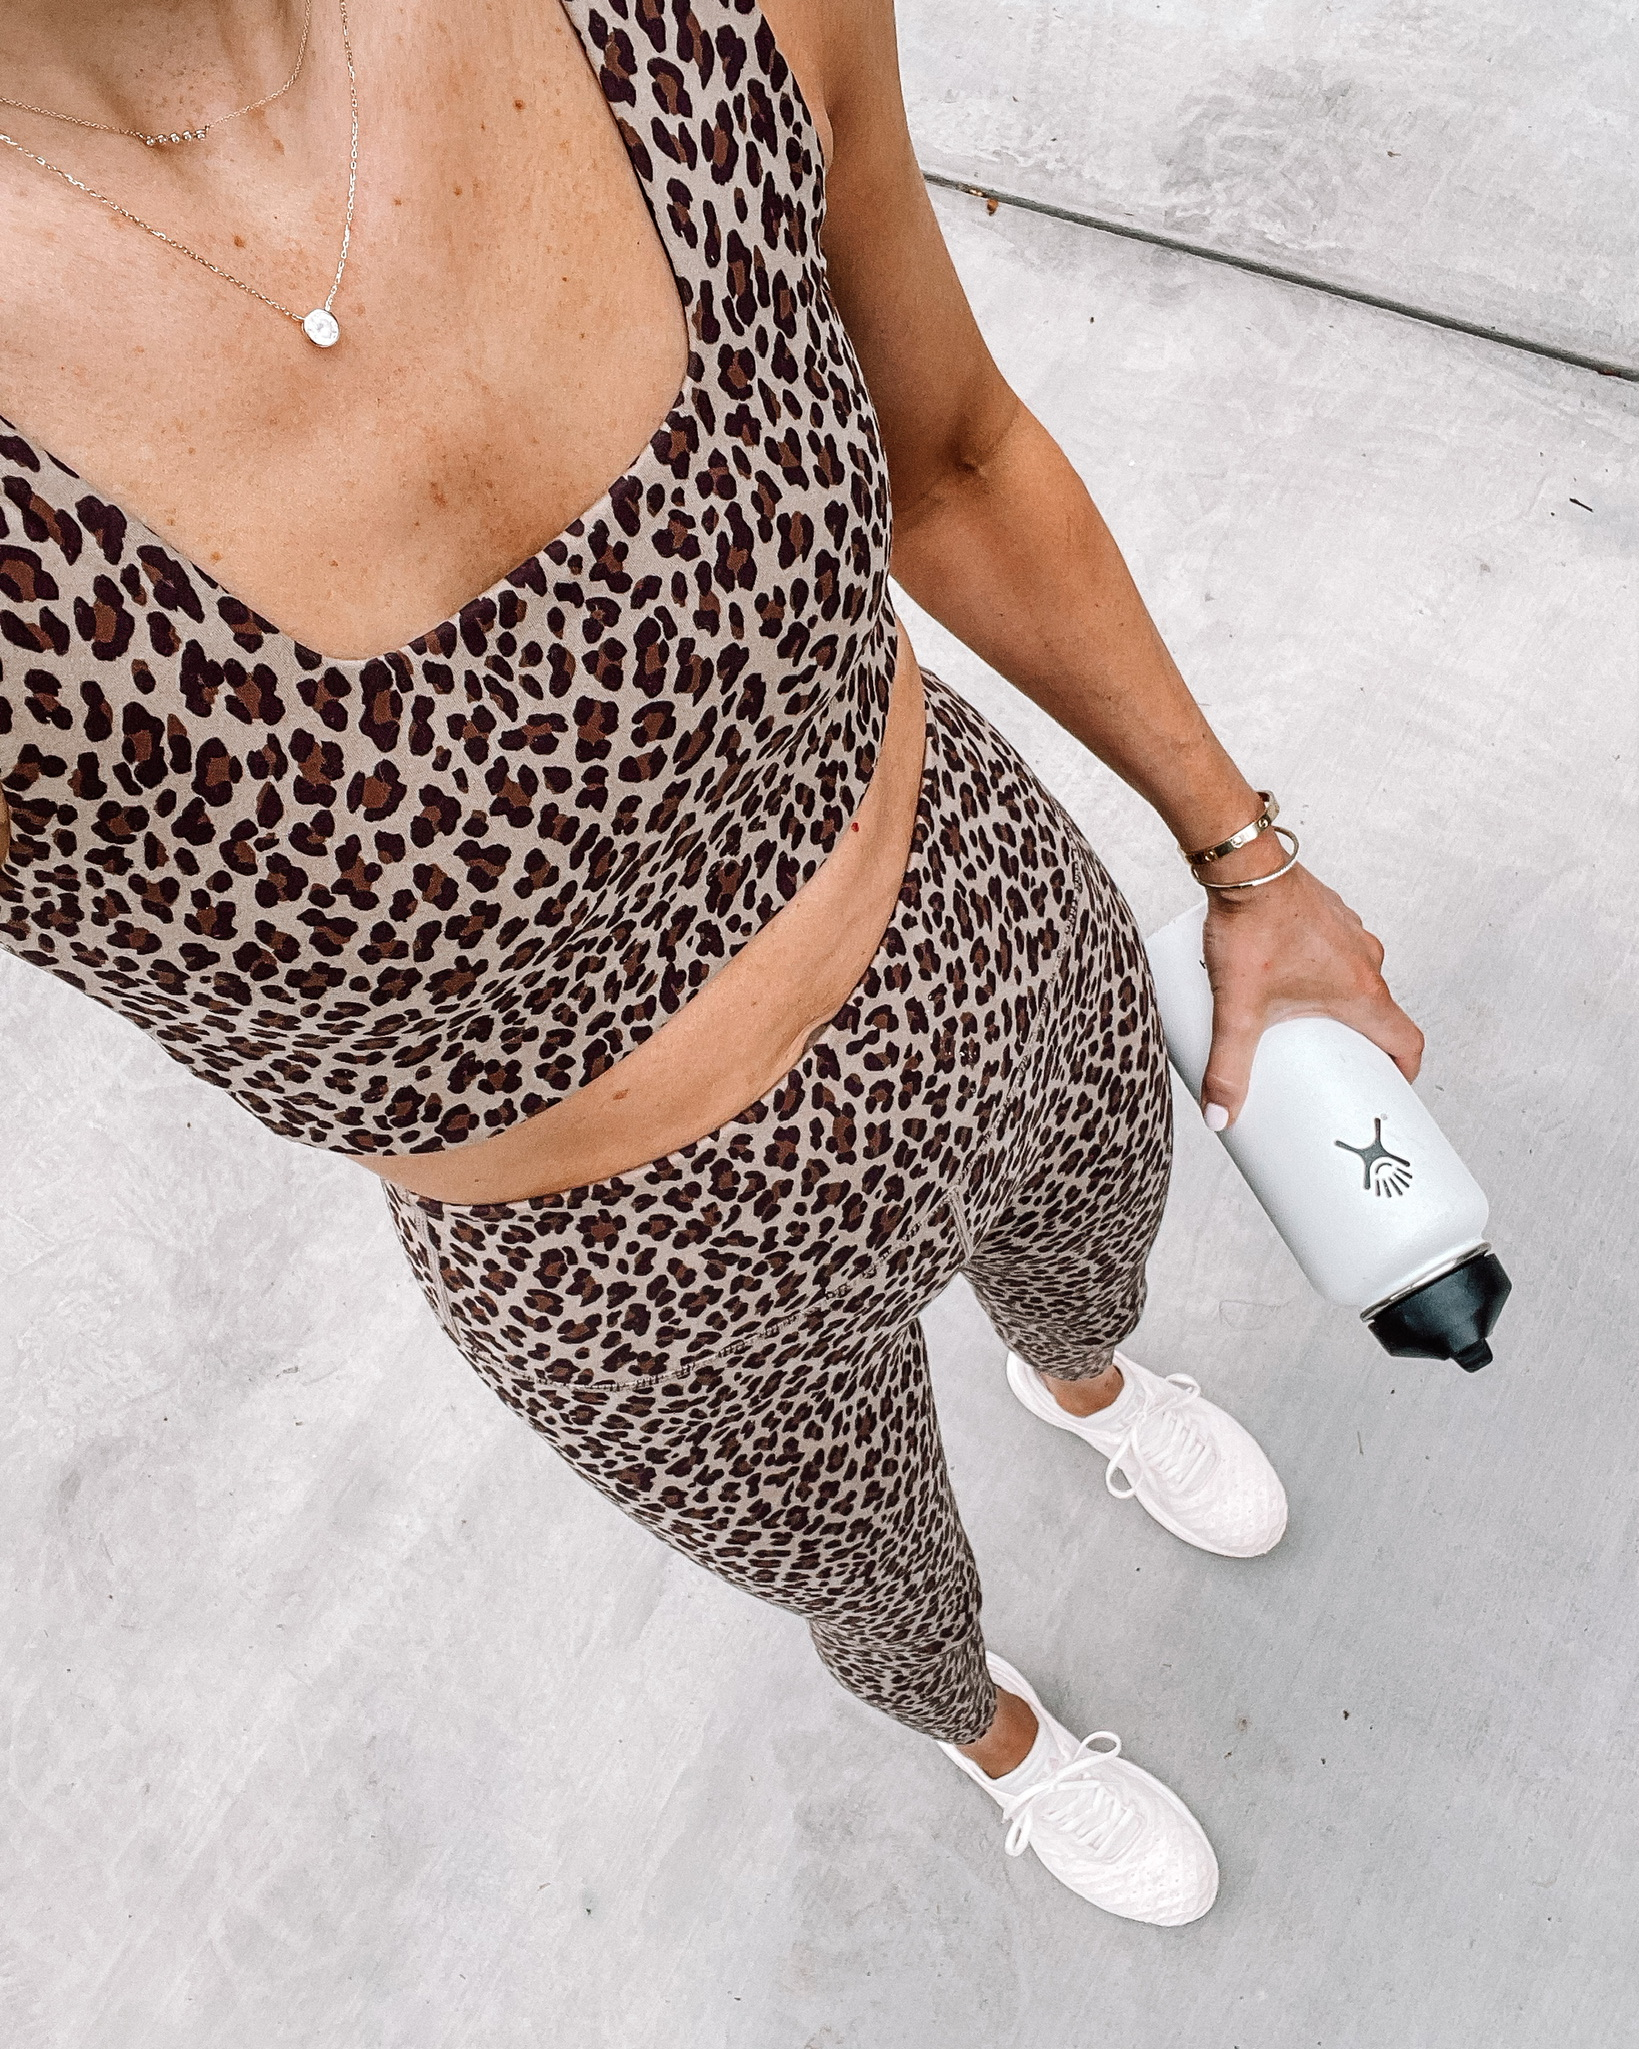 Fashion Jackson Wearing Varley Leopard Sports Bra Varley Leopard Leggings APL Sneakers workout outfits for women